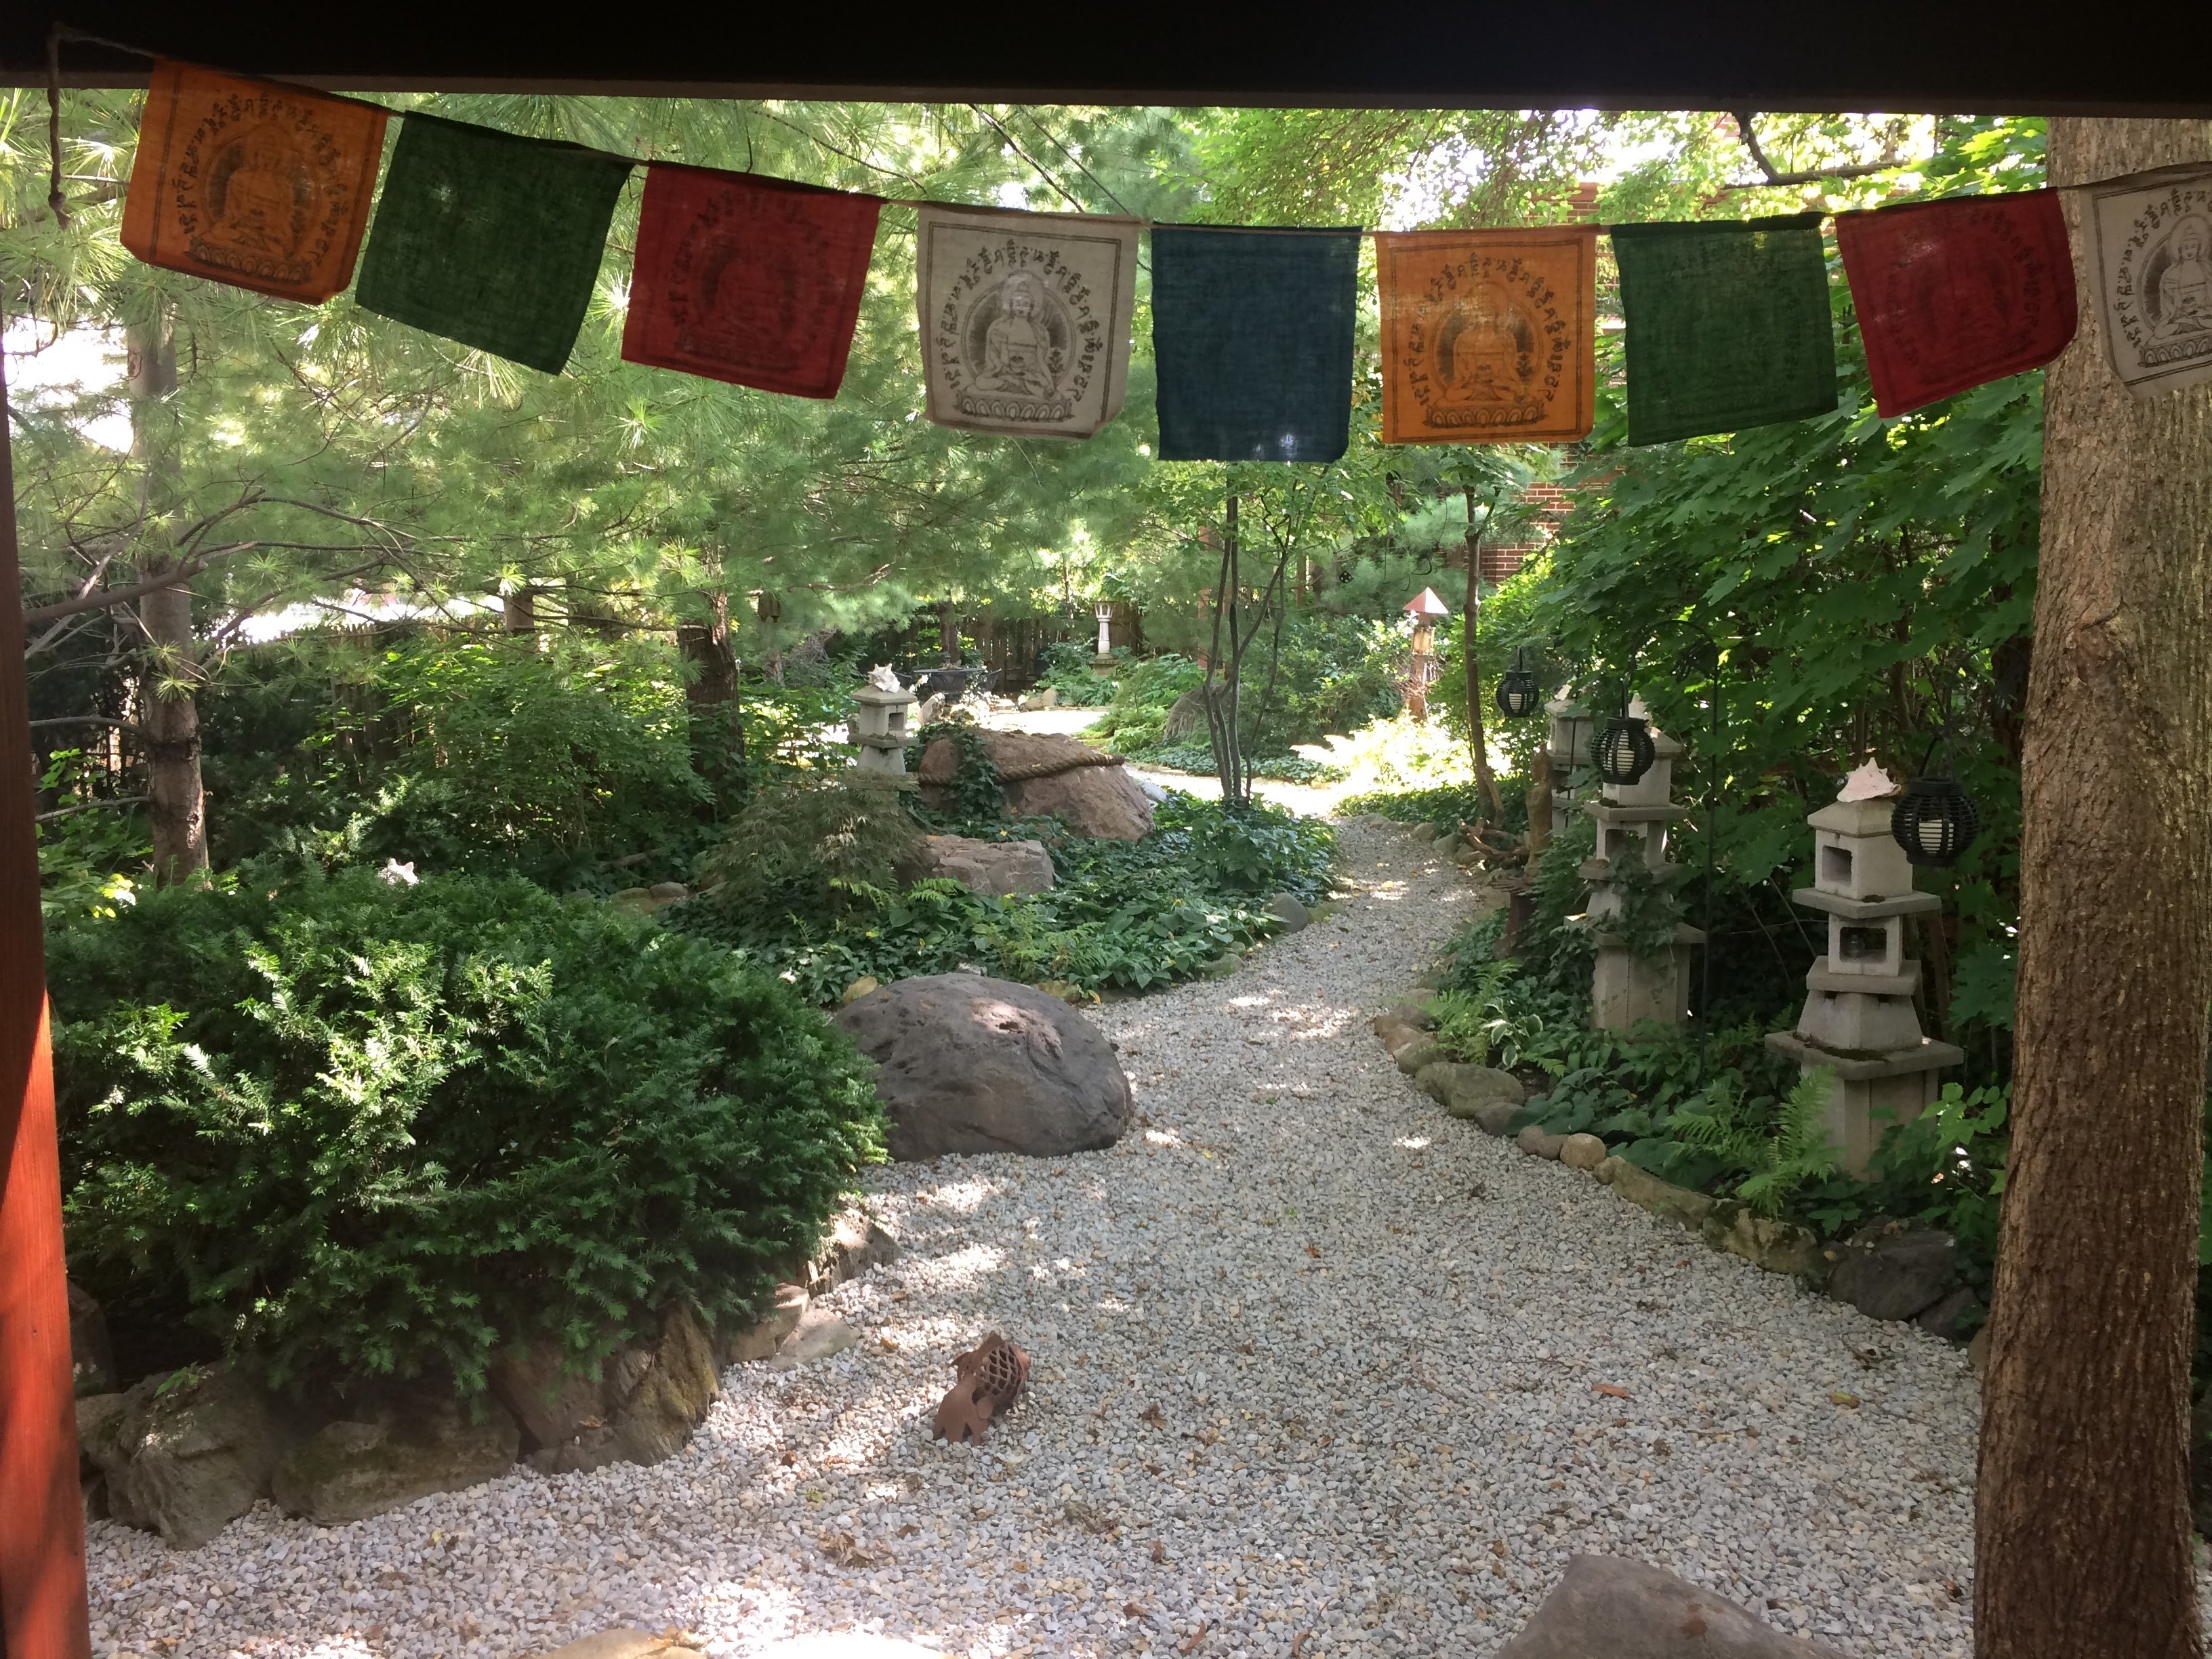 Photo of entrance to urban garden with gravel pathway and prayer flags